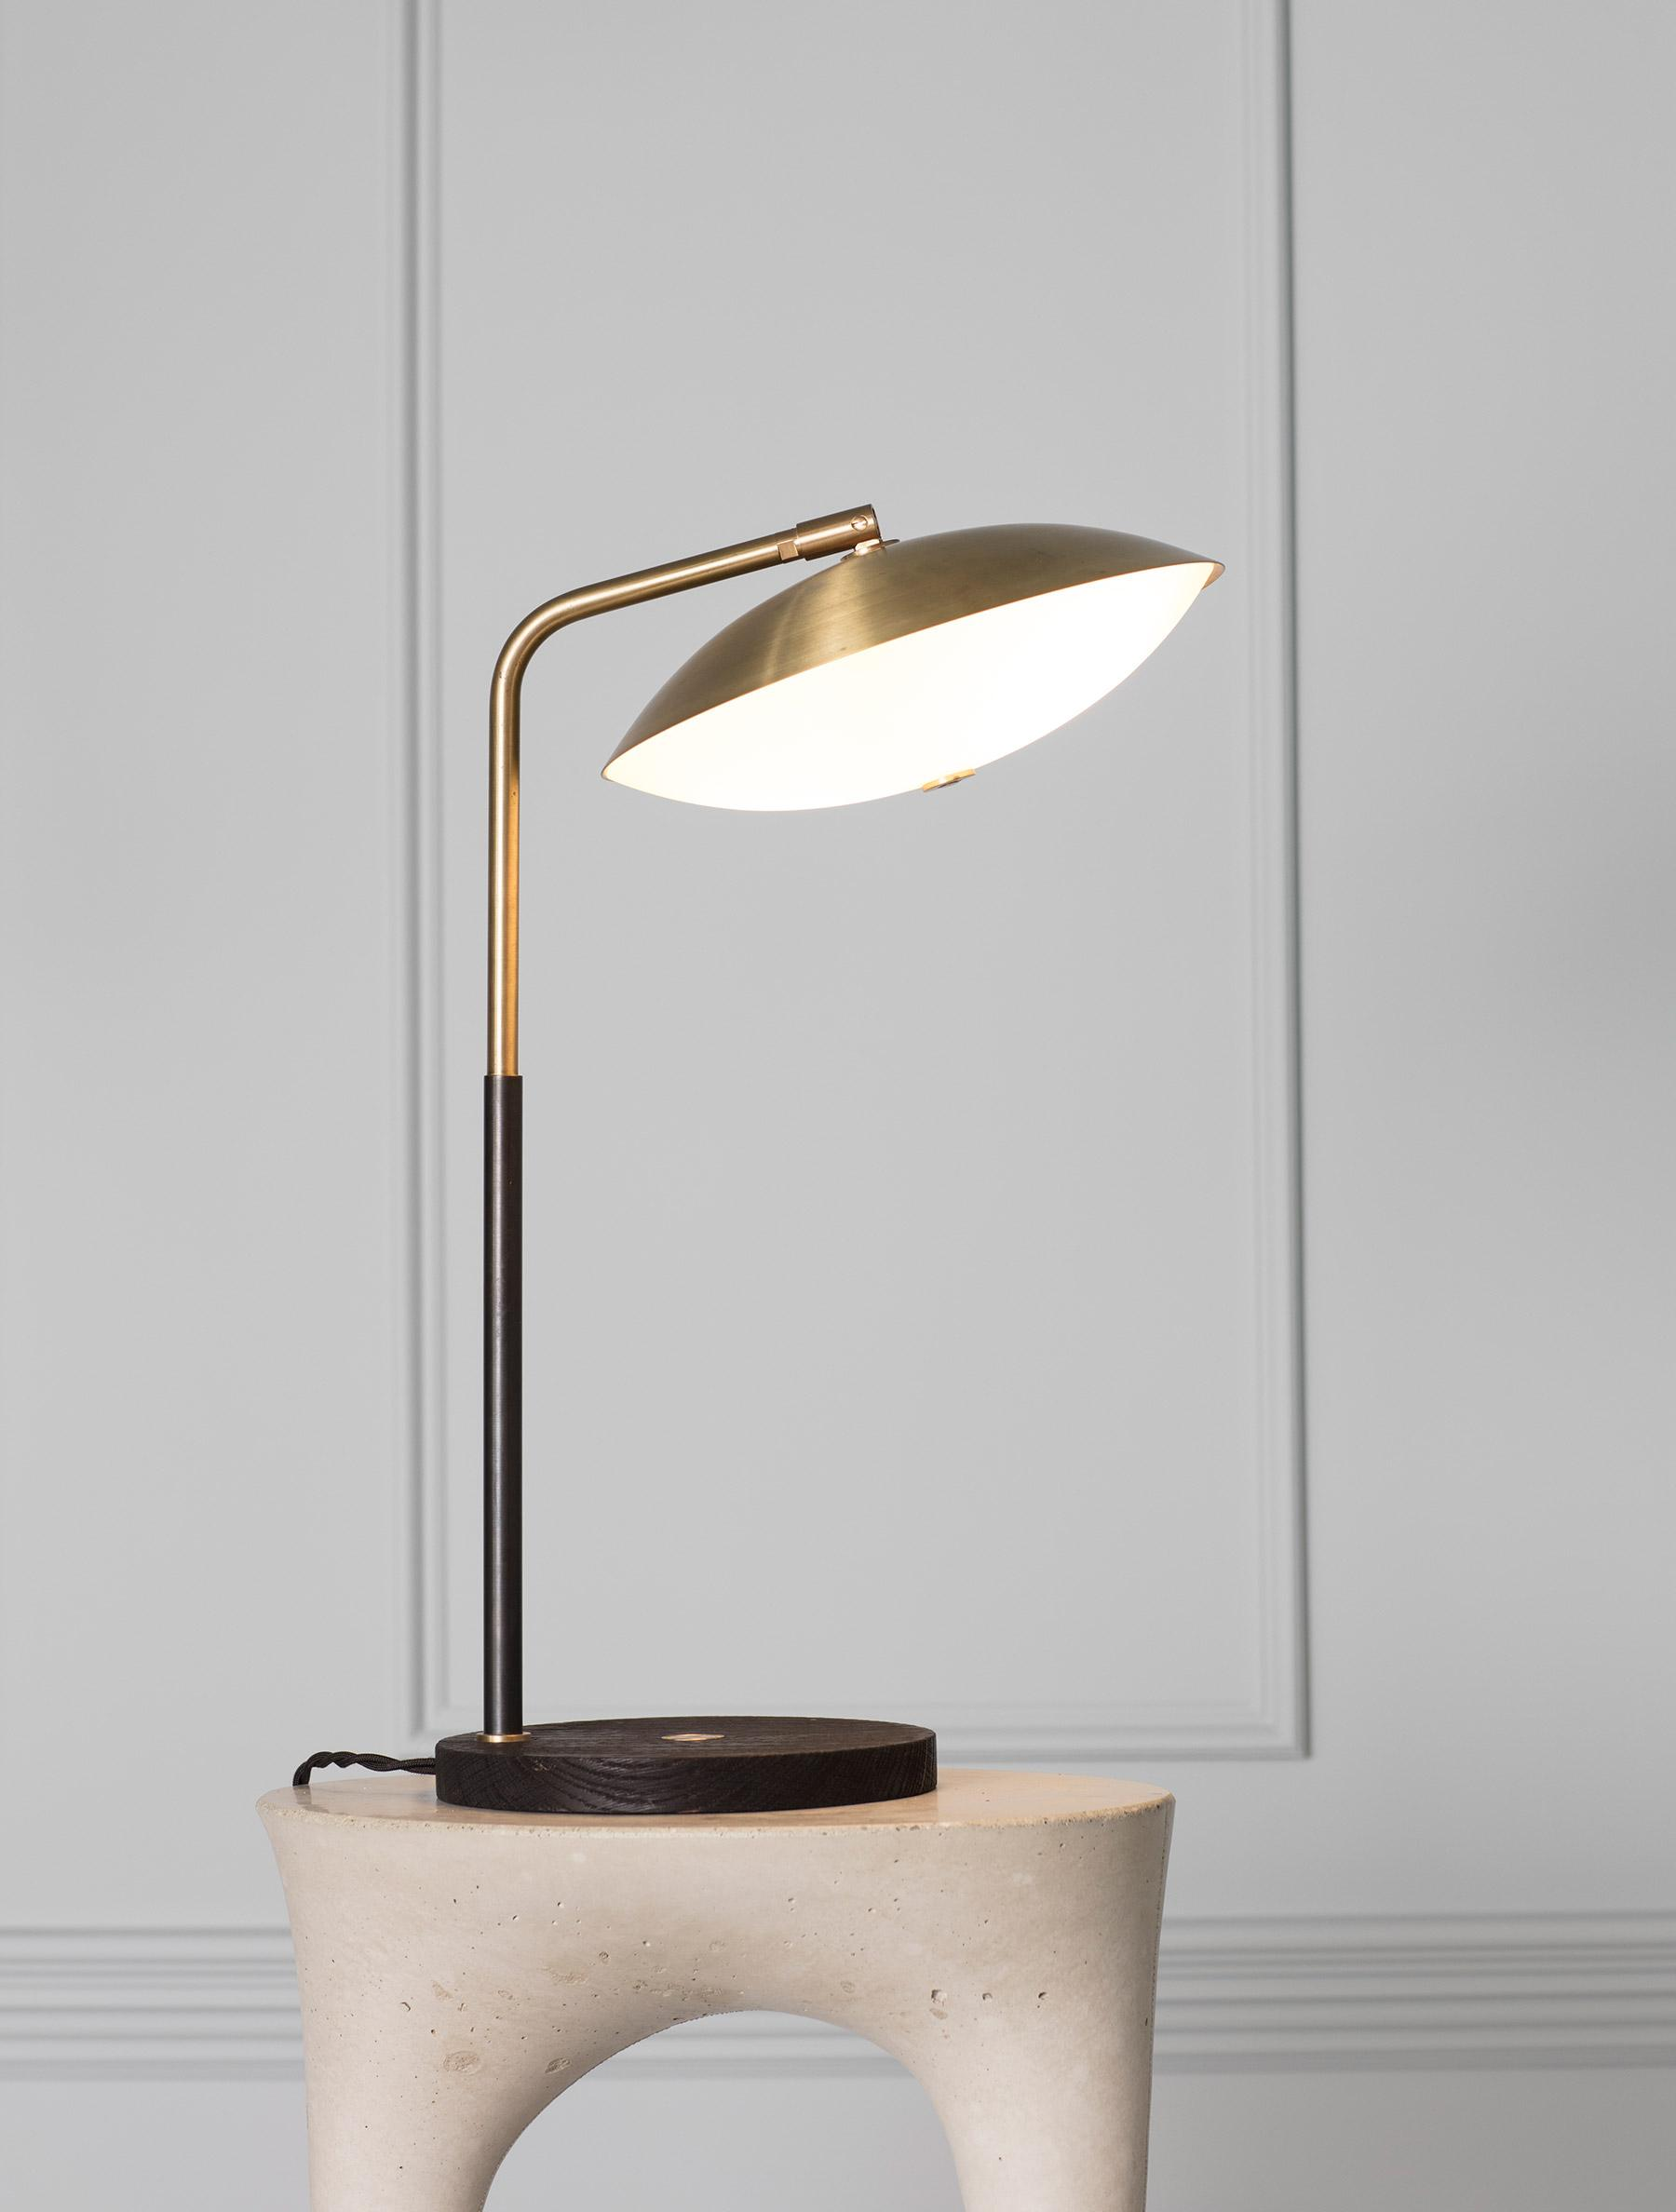 Crest Table Lamp shown in Brass, Blackened Brass, Flame Blackened Oak, and Opal Glass